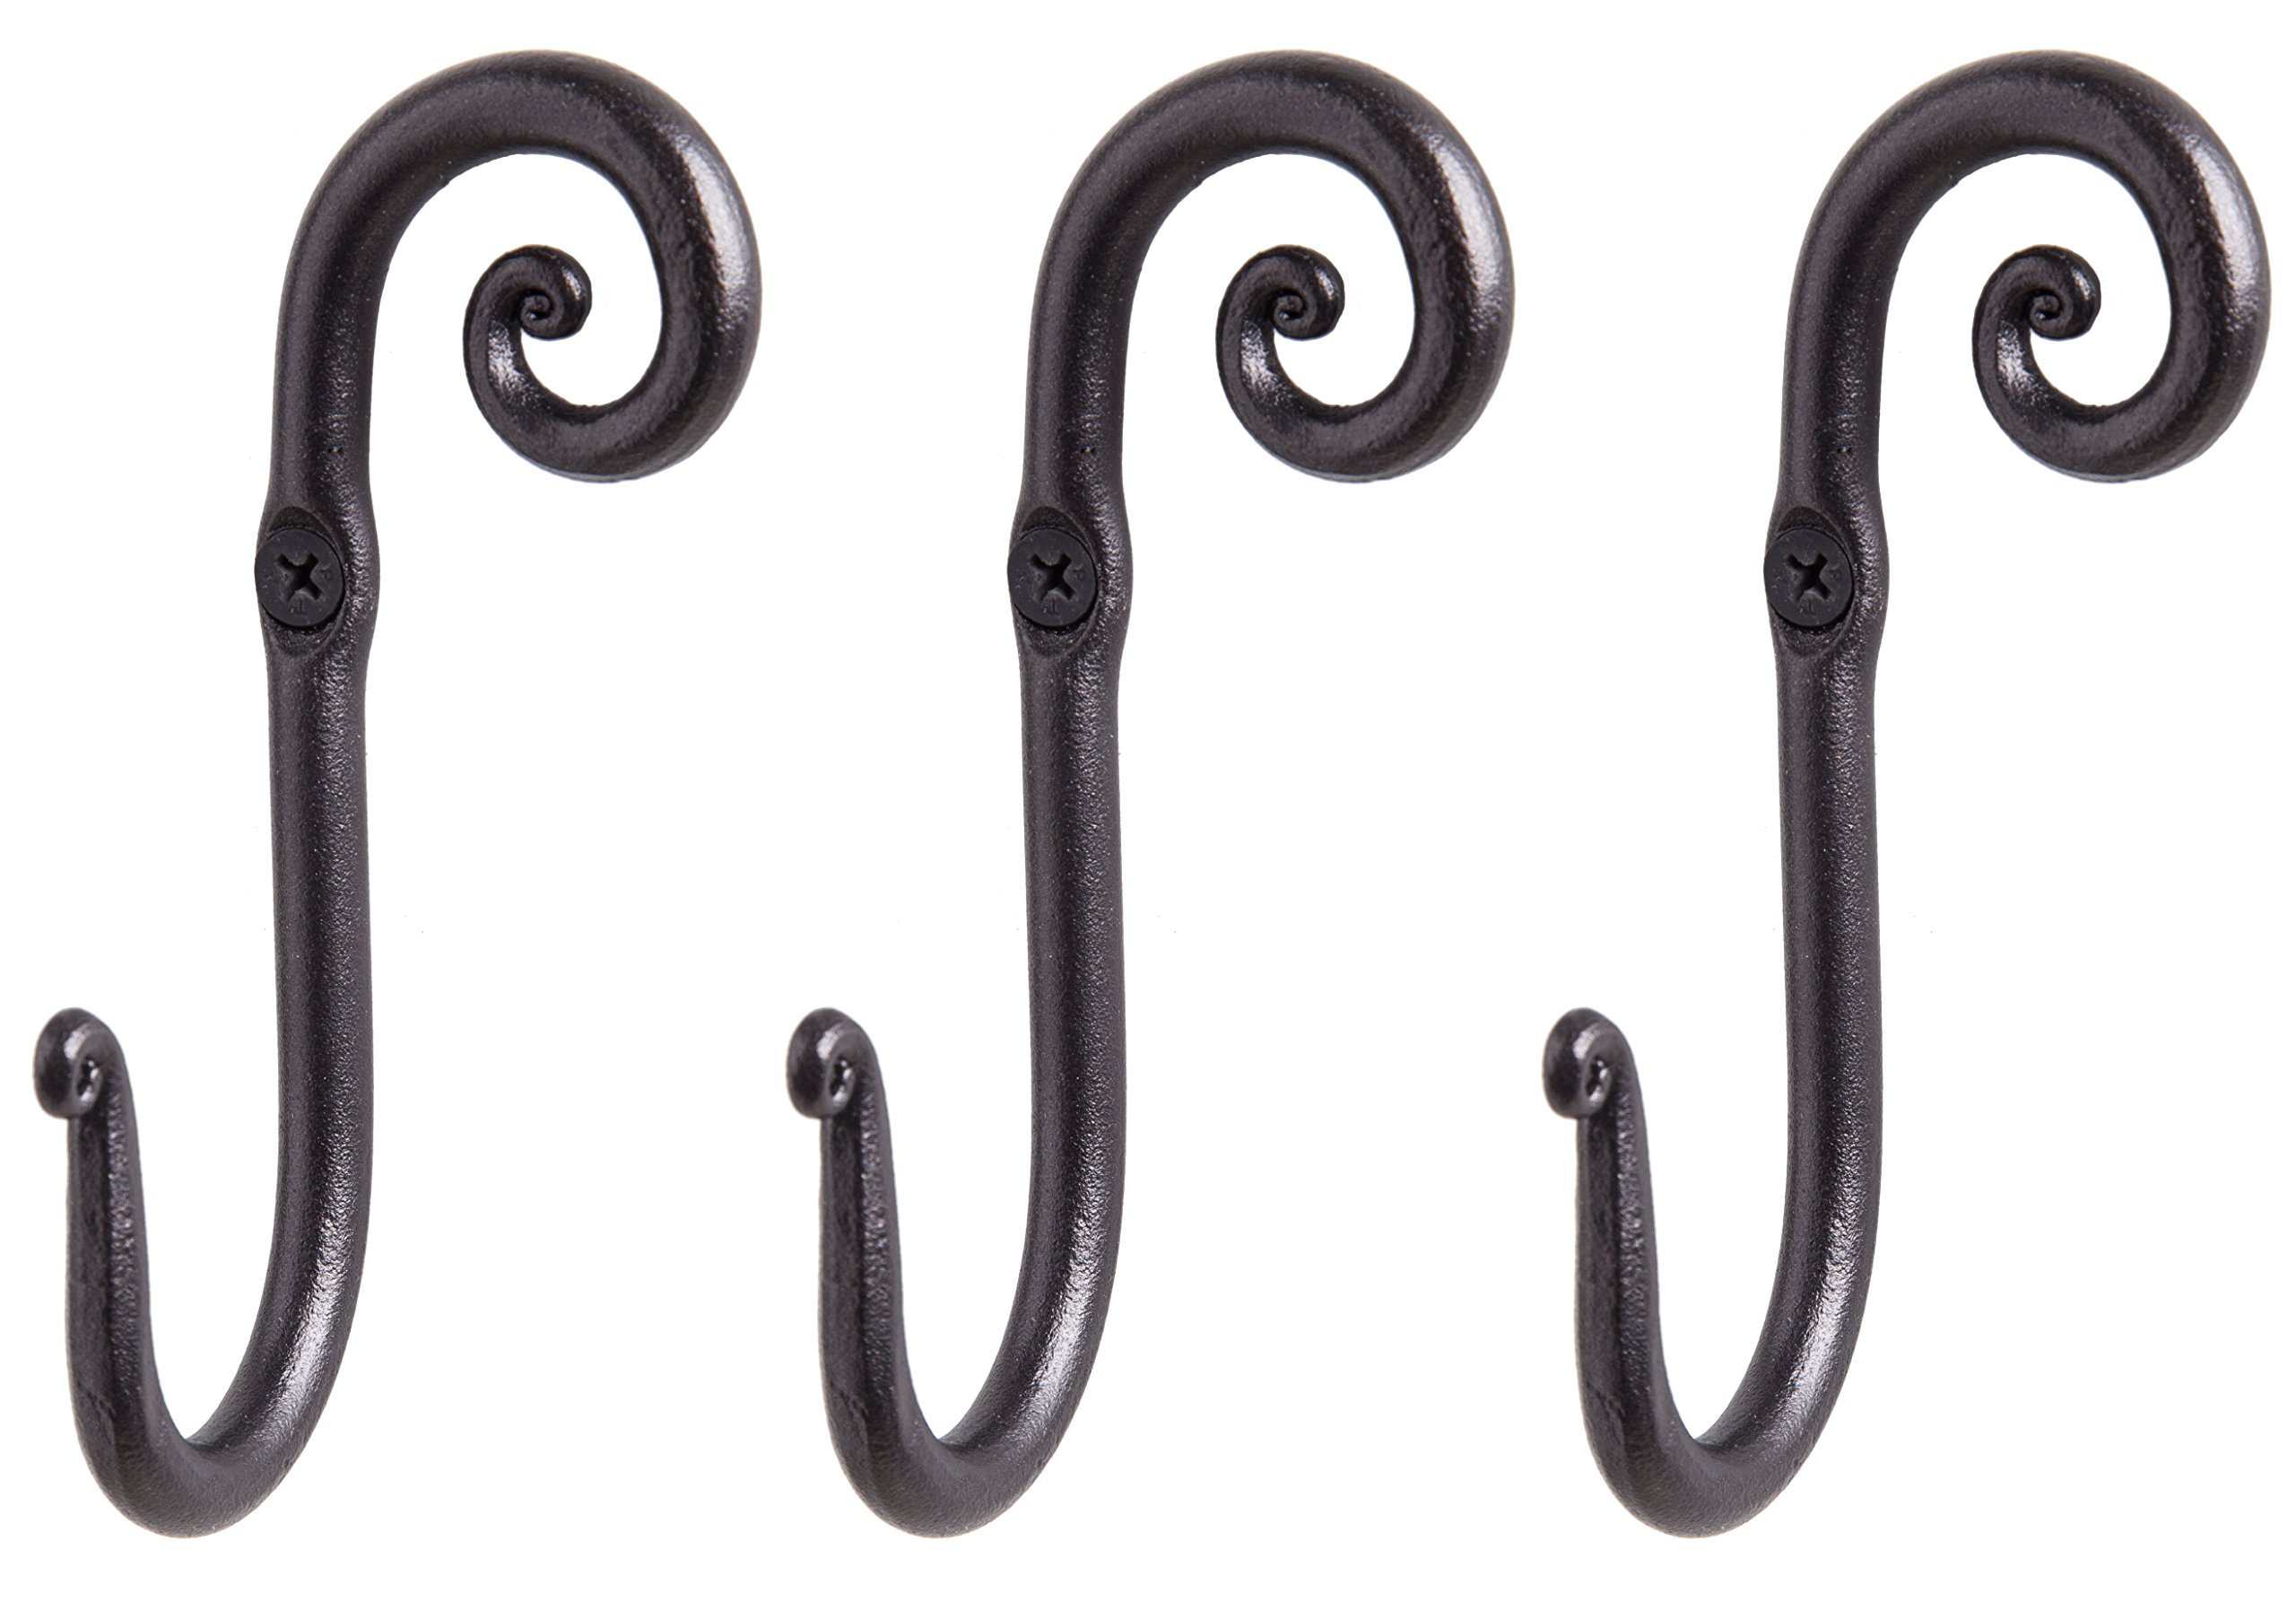 RTZEN Blacksmith Handmade Decorative Wrought Iron Wall Mounted hook Right Swirl Clothes Rack Hooks Hangers | by Décor